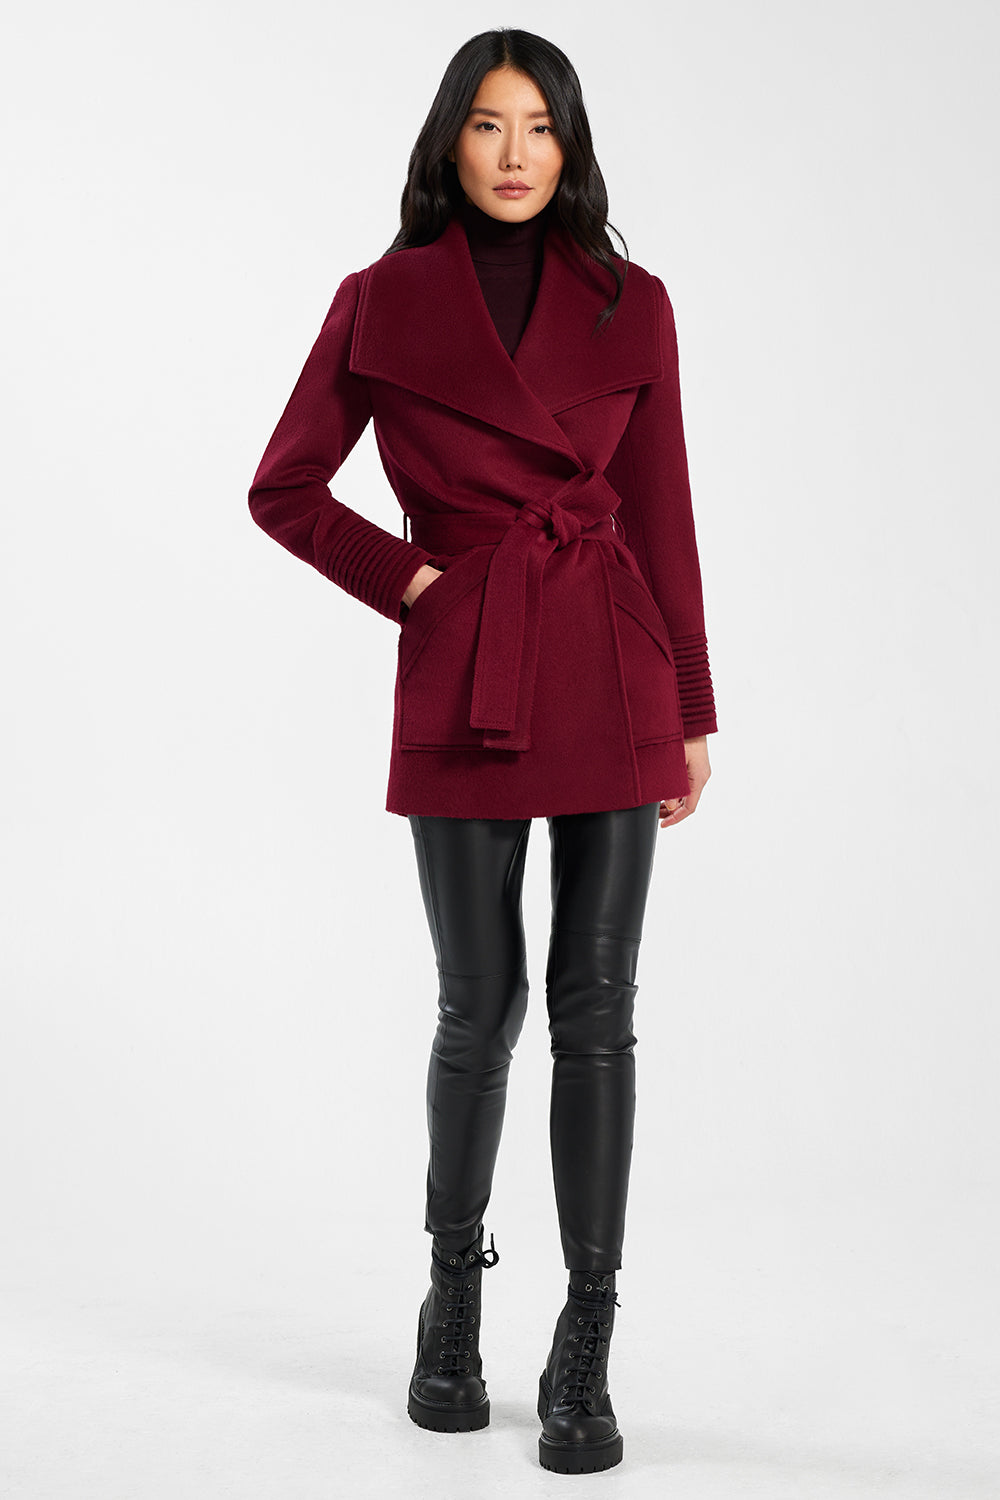 Sentaler Cropped Wide Collar Wrap Coat featured in Baby Alpaca and available in Garnet Red. Seen from front.